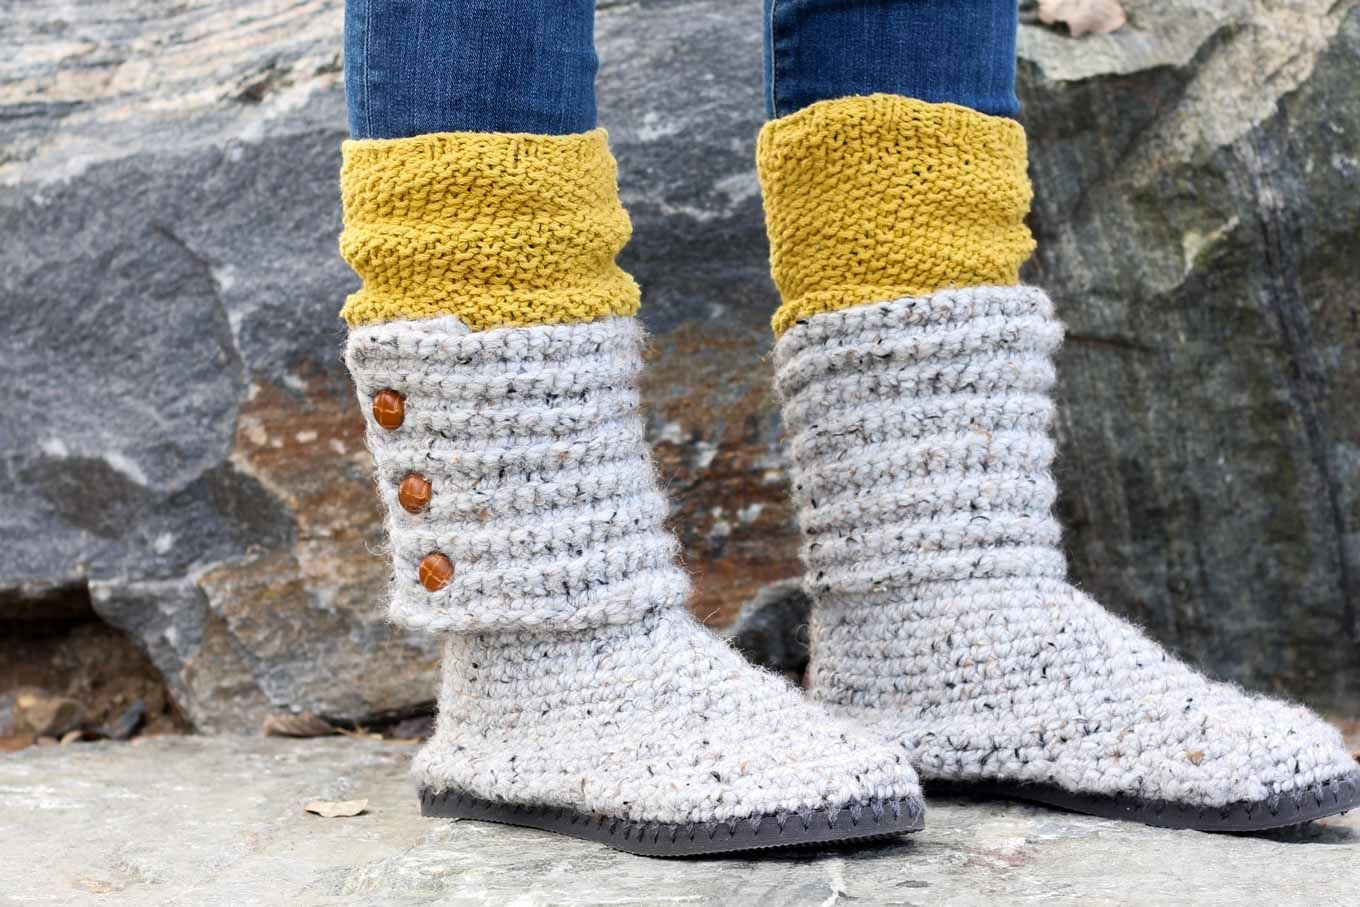 dbfbf3c08ab3a6 With this free pattern and crochet video tutorial you can make your own look -a-like crochet Uggs! These crochet boots with flip flops for soles make  great ...